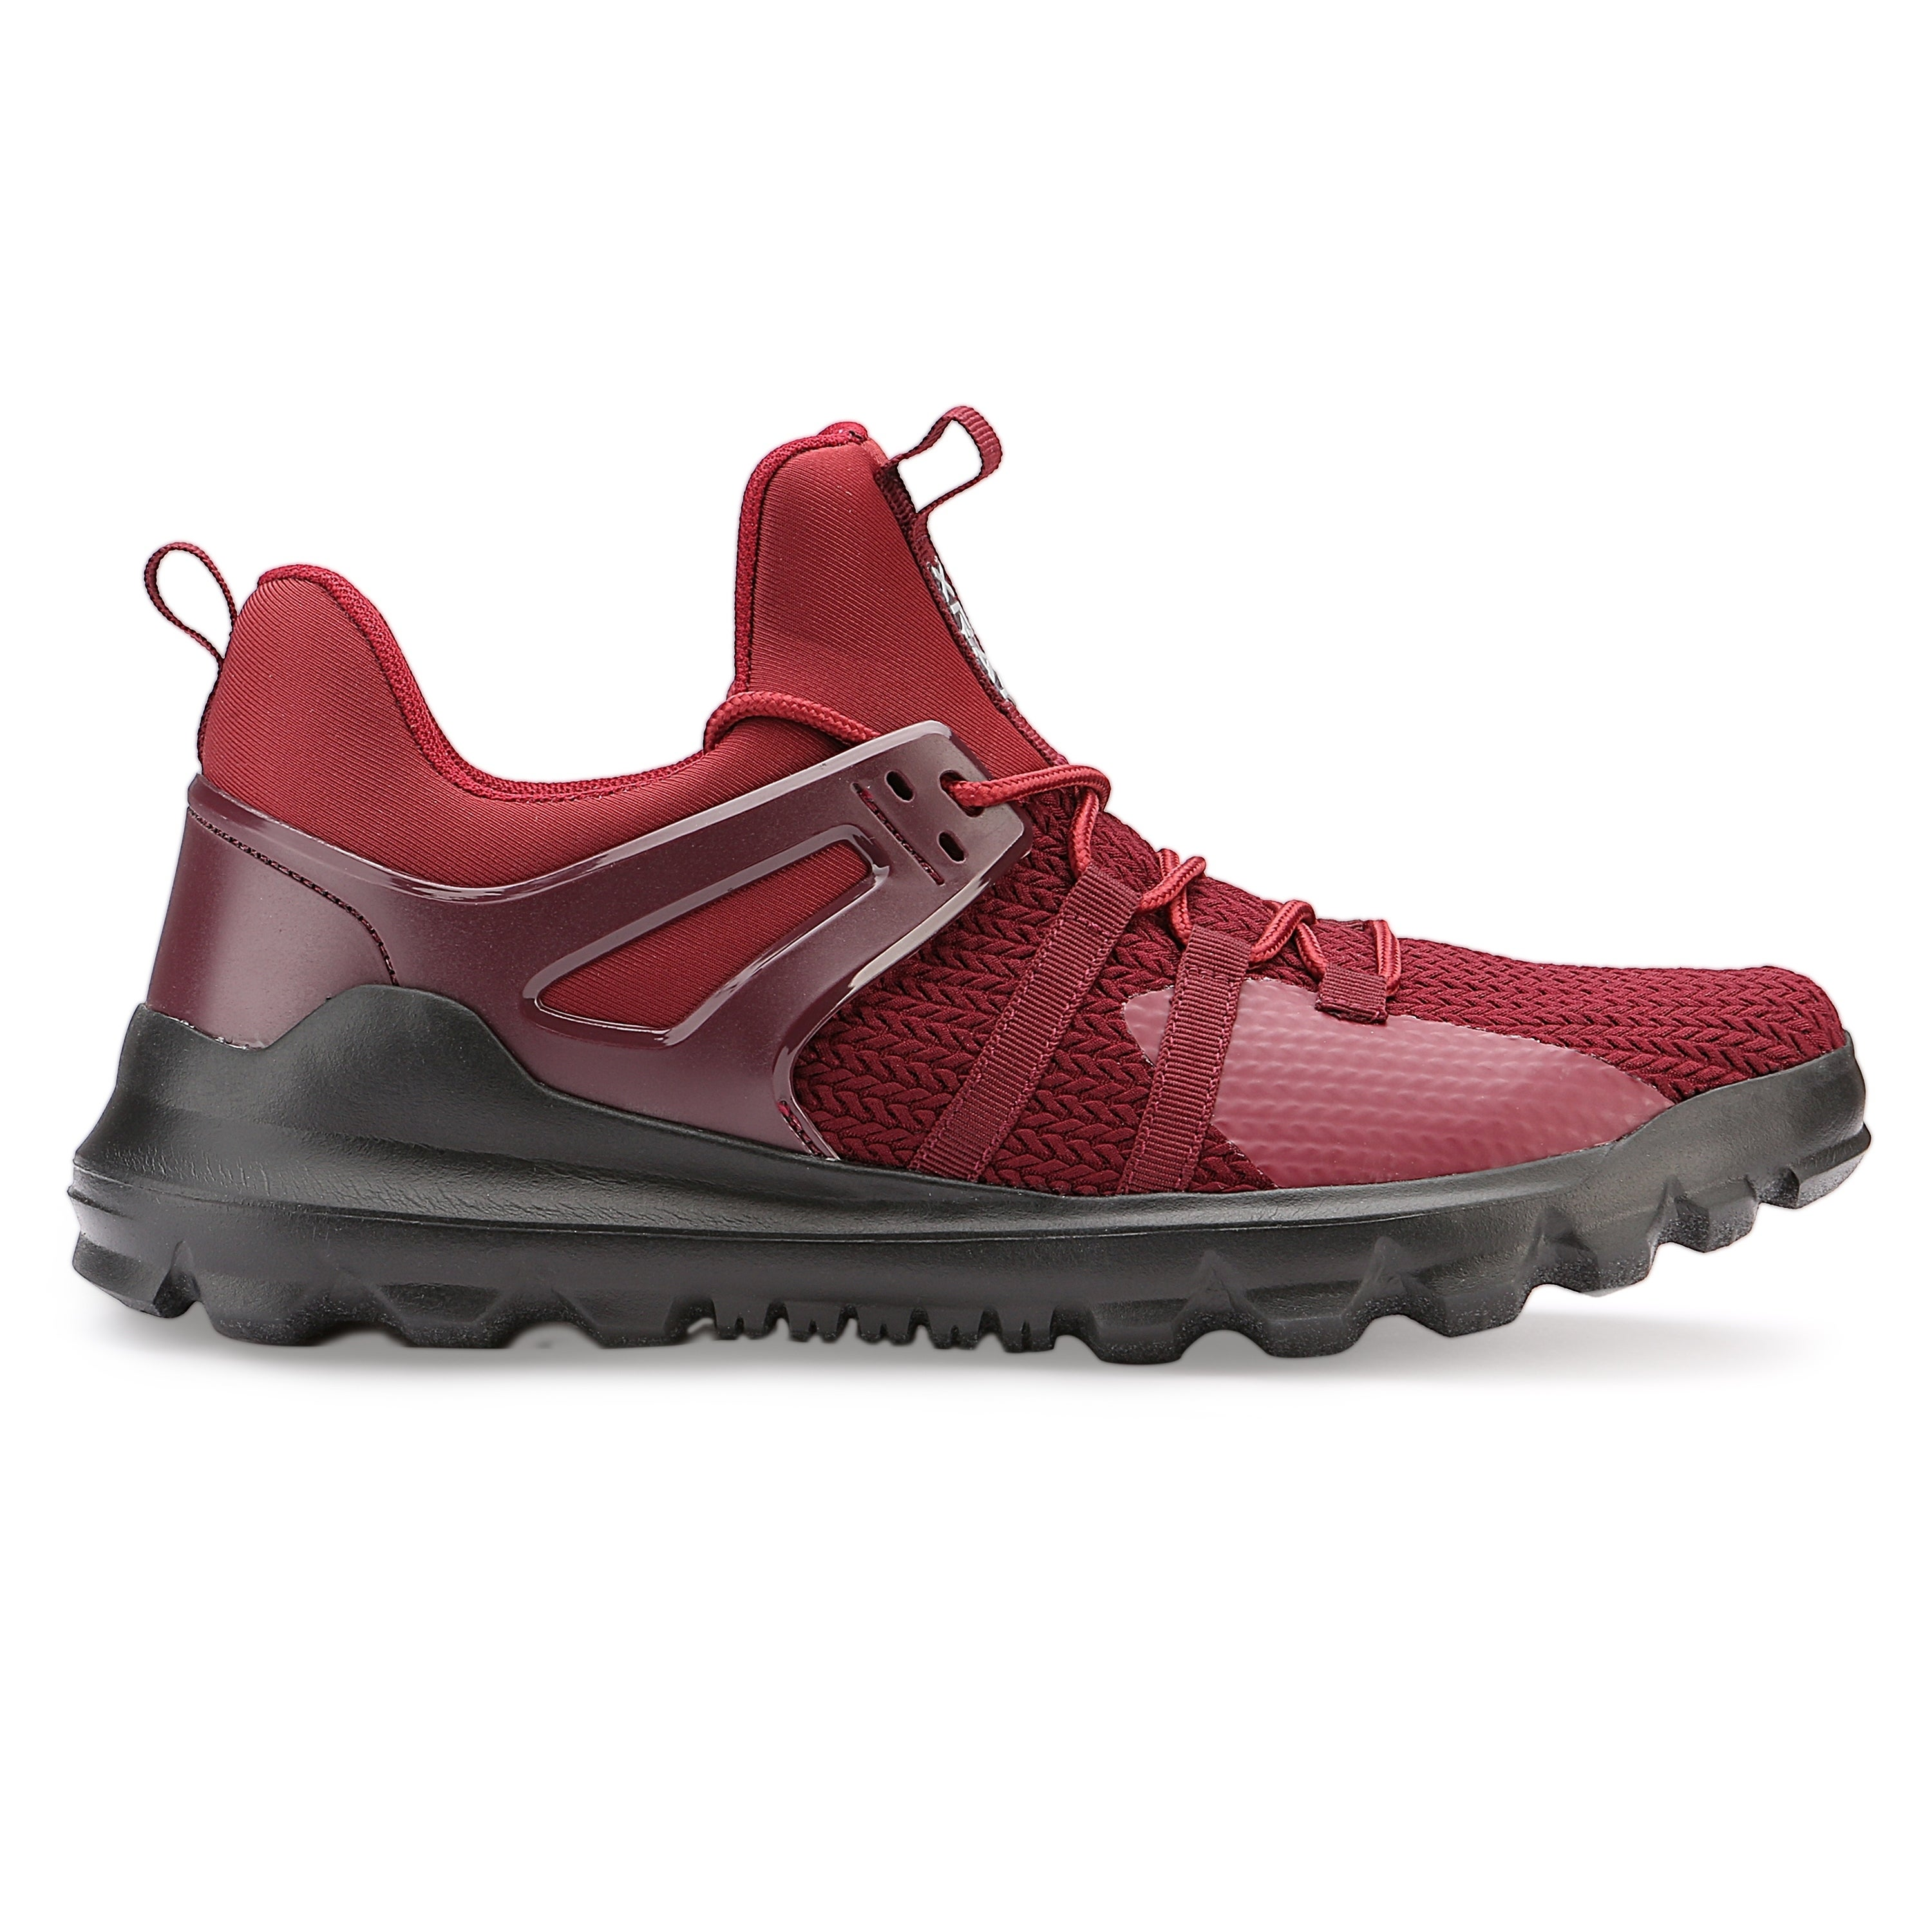 Xray Ampato Men's Sneakers Inexpensive cheap price buy cheap good selling sale pictures free shipping from china aVYv5